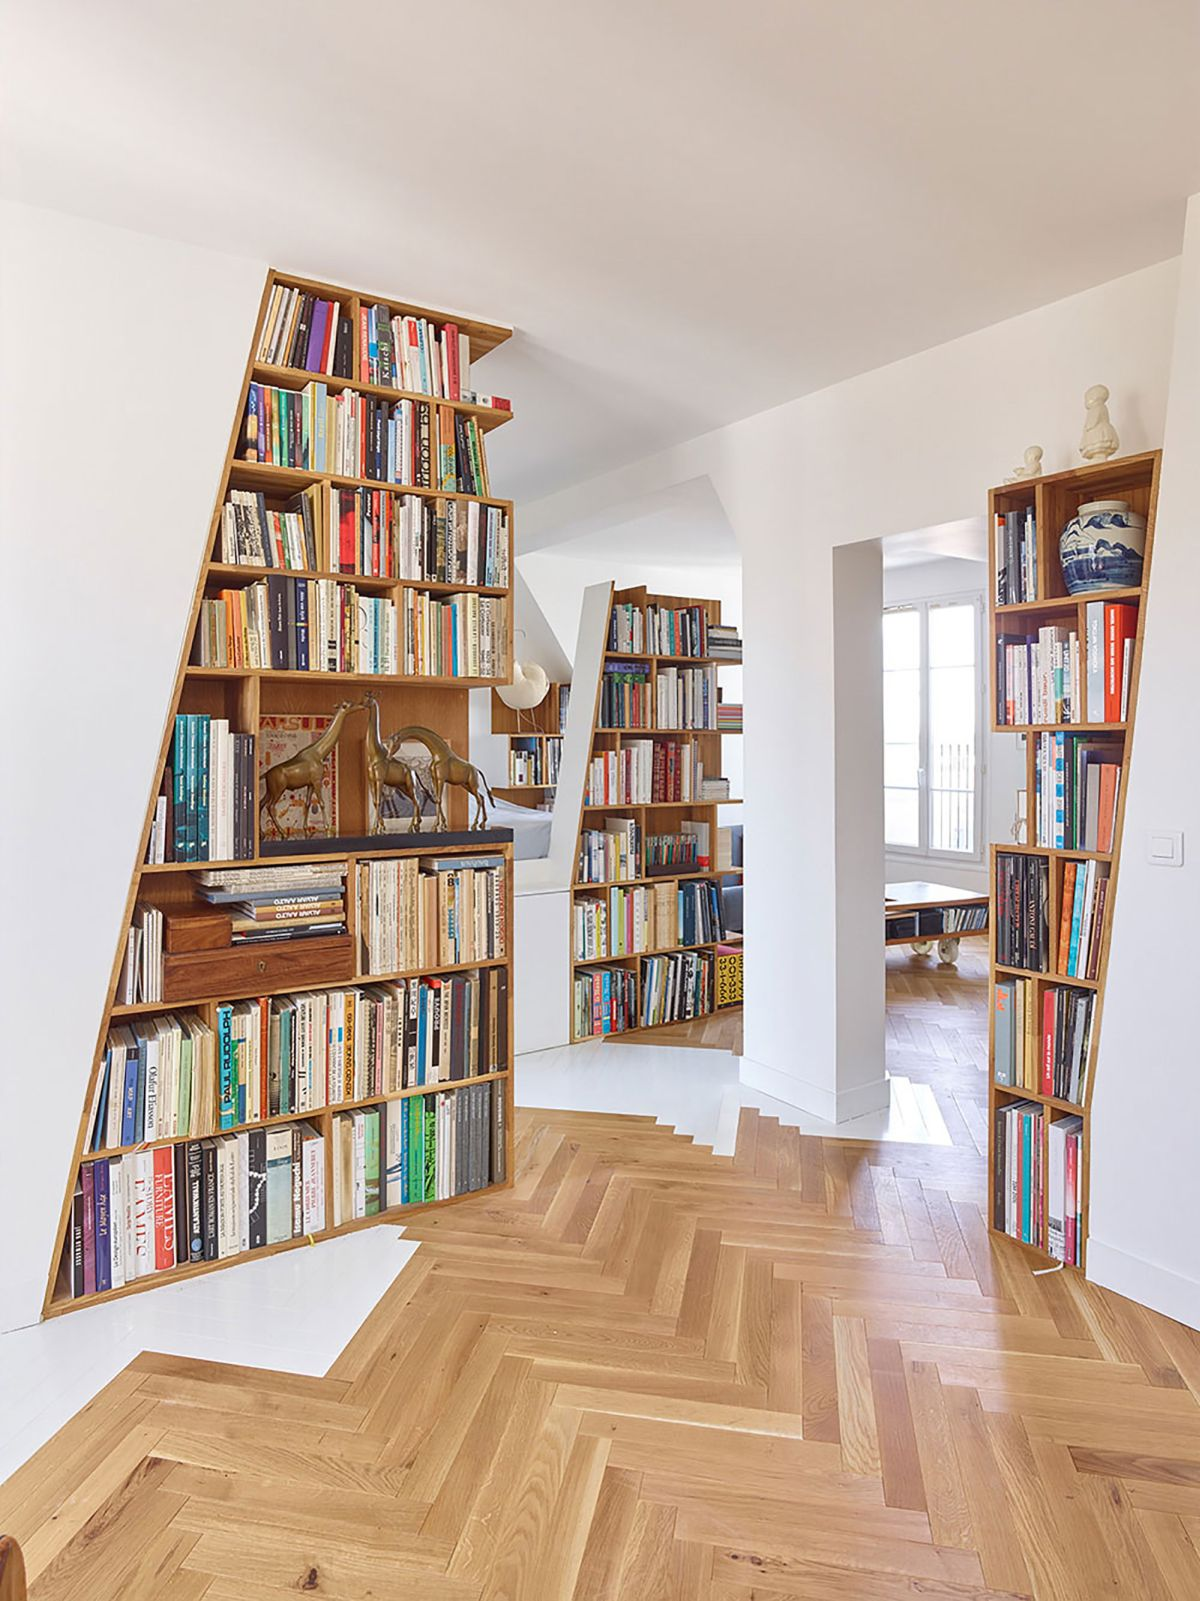 Unusual Bookcases Putting A Creative Spin On The Classical Bookcase Concept